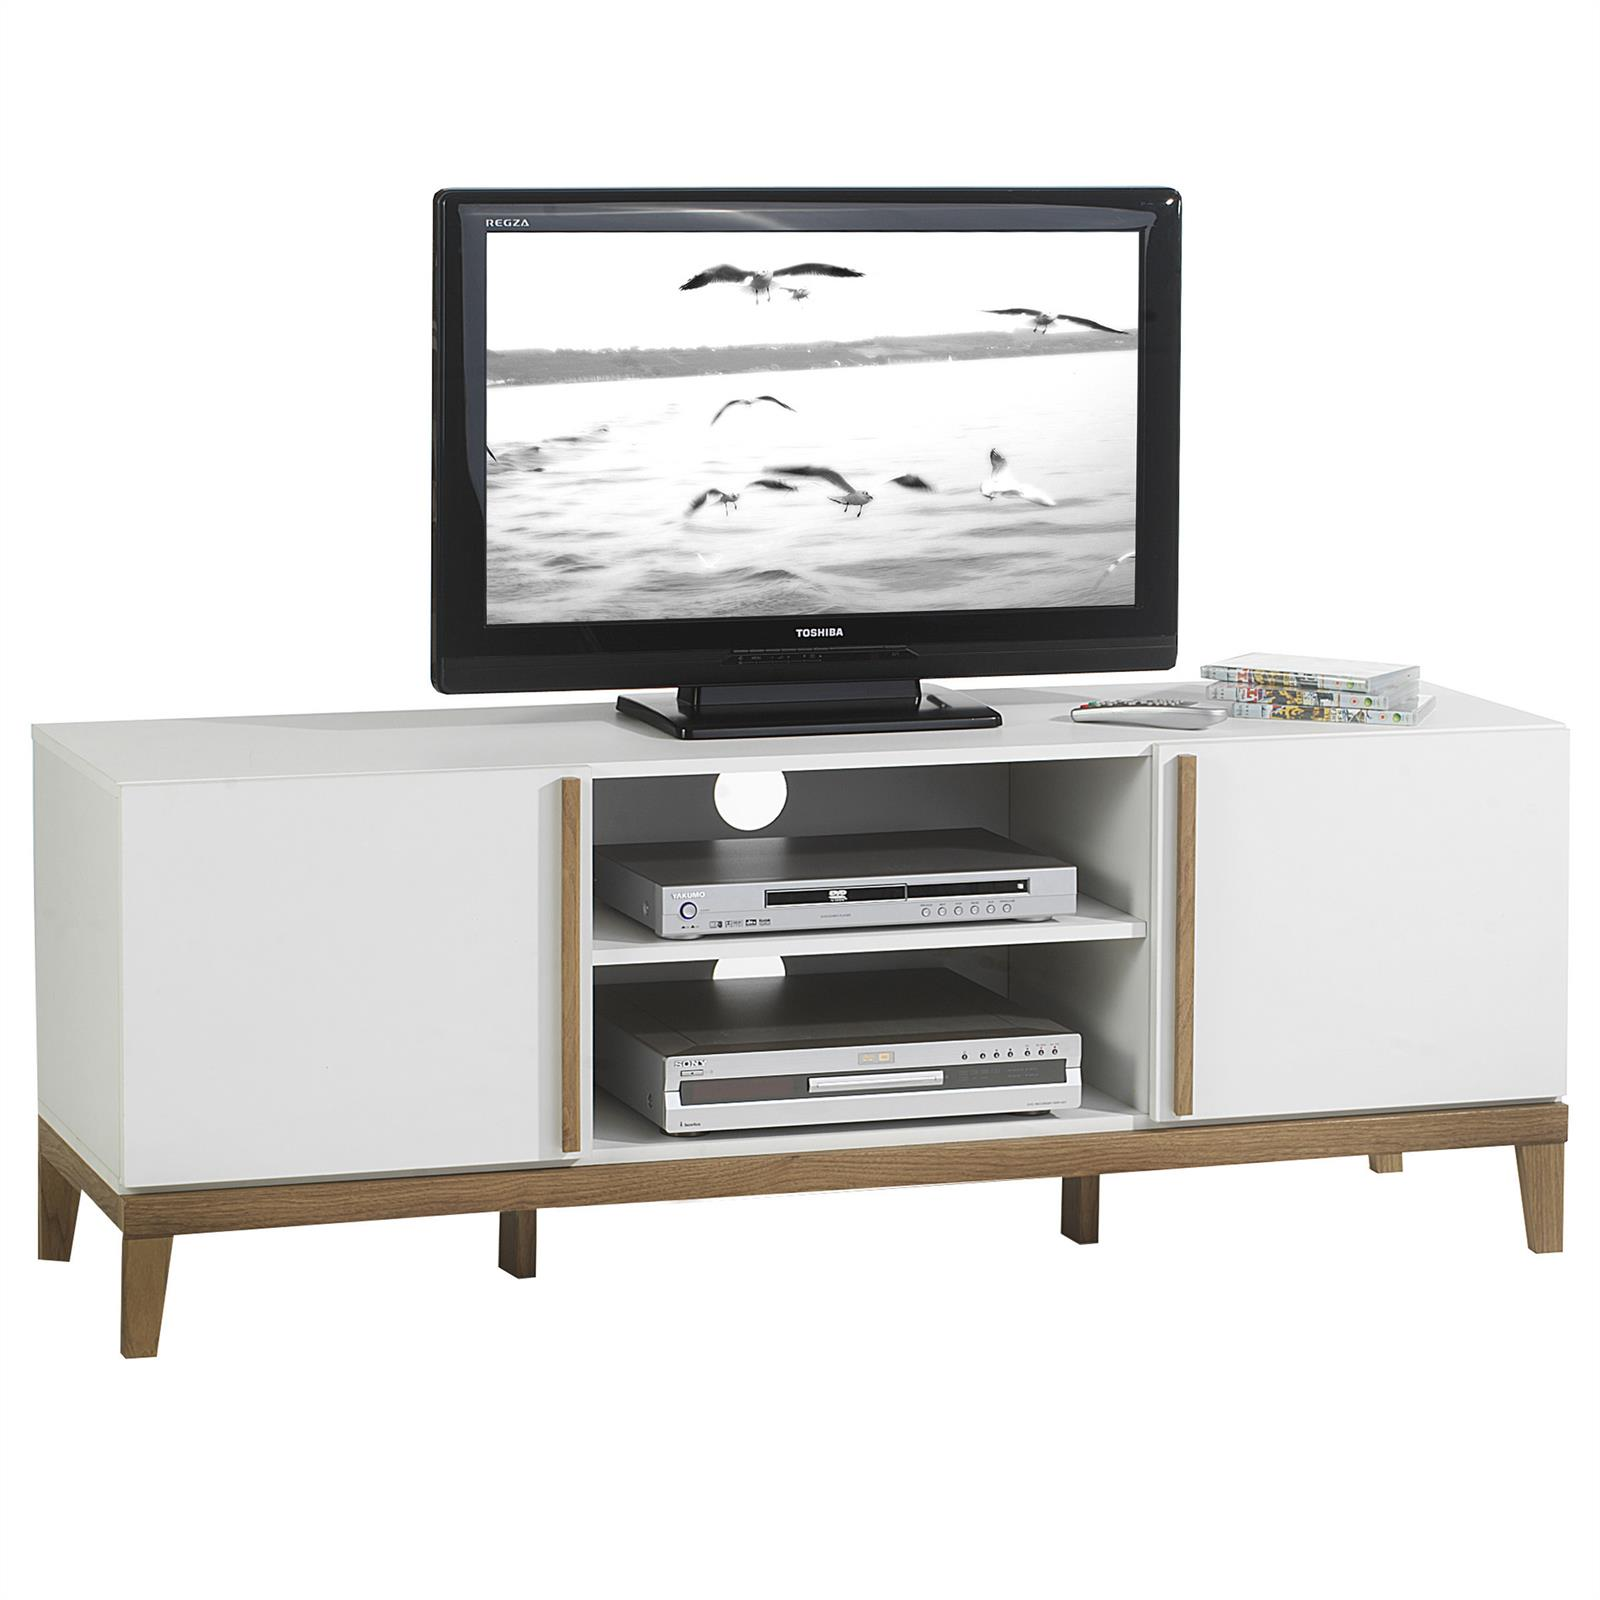 tv rack hifi m bel lowboard fernsehtisch wohnzimmertisch wei lackiert ebay. Black Bedroom Furniture Sets. Home Design Ideas